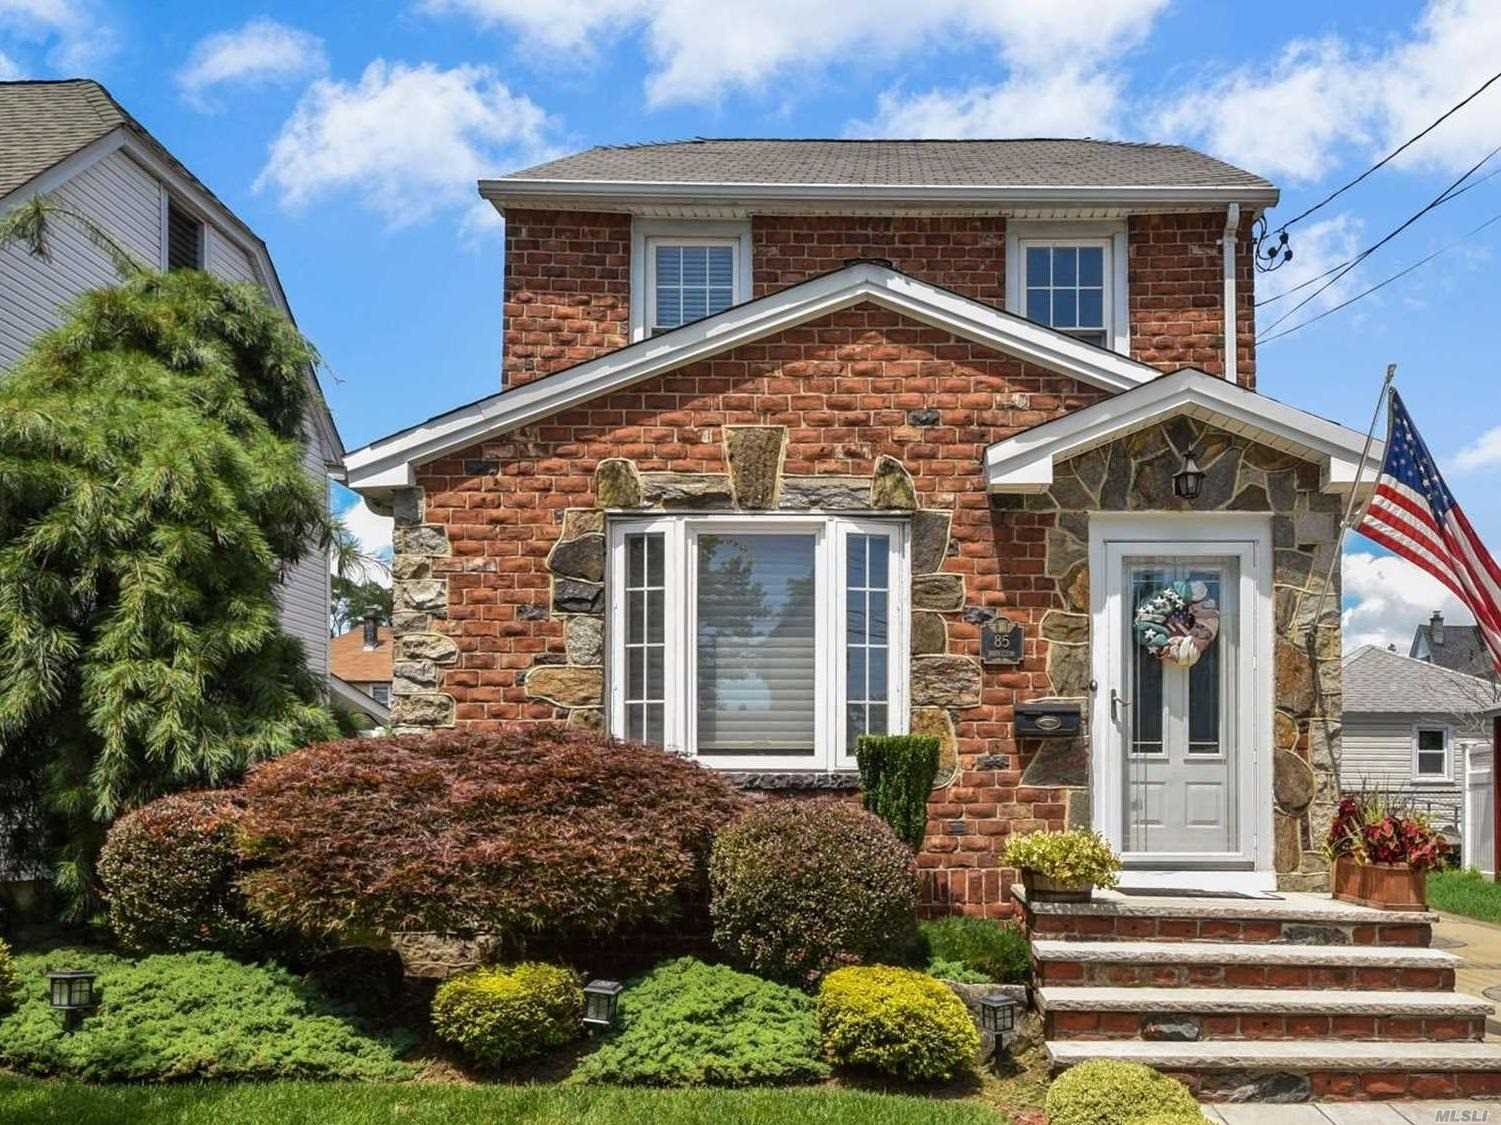 Superb Brick Chatlos Colonial, Every Amenity! Two Gas Fireplaces, Mr. Steam Shower, Professional Closets, Gazebo With Fan, Special Lighting, And 200 Amp Electrical Service. Don't Miss This Opportunity To Live In One Of The Largest Homes In Williston Park! Extra Large Full Basement! Convenient To Village Pool, Transportation And Houses Of Worship